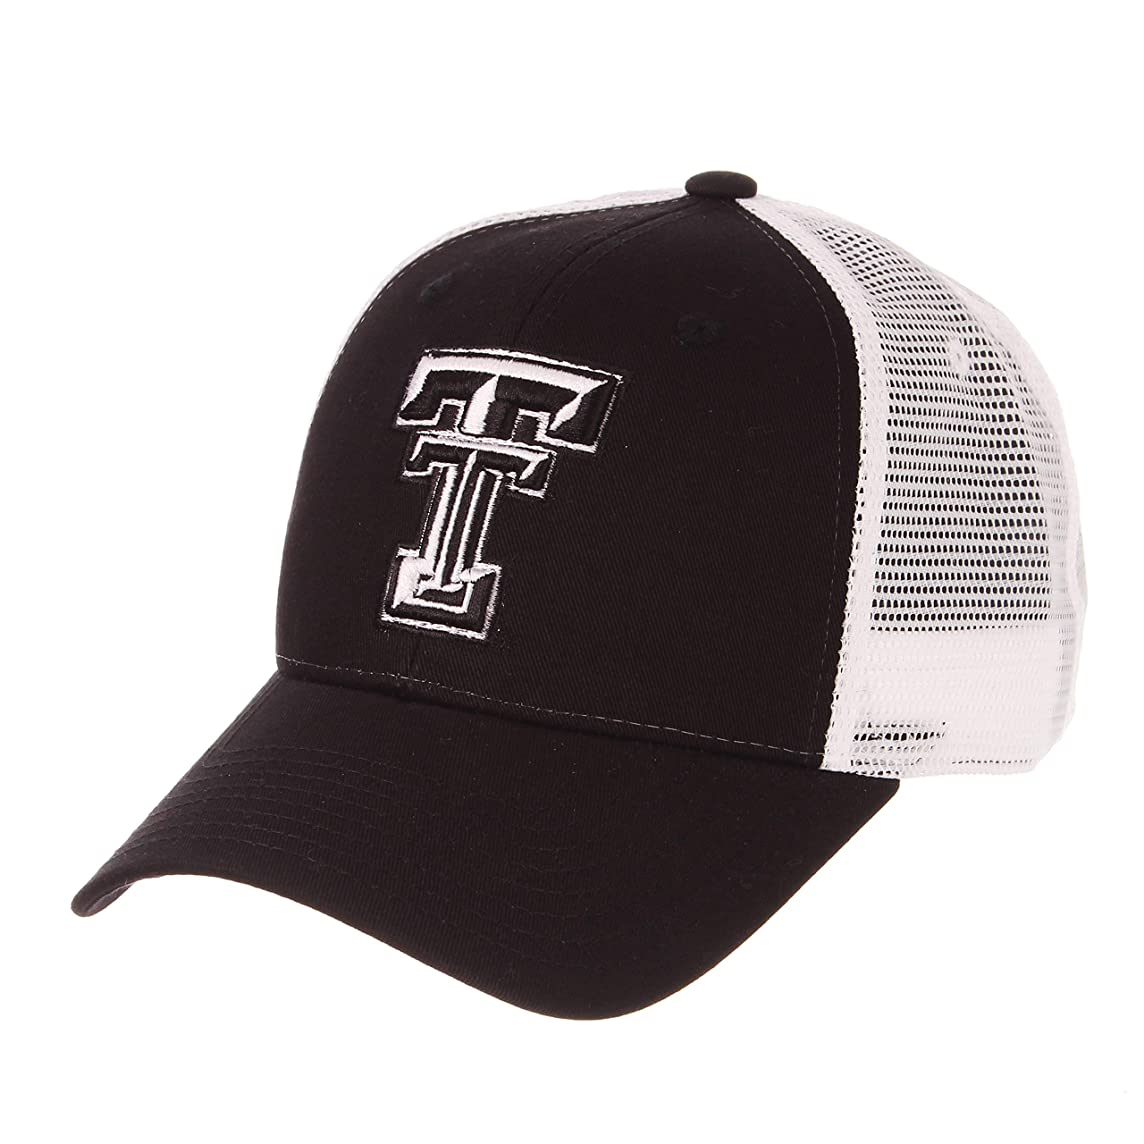 Zephyr Texas Tech University Red Raiders Black Big Rig Mesh Trucker Mens/Boys/Women Best Baseball Hat/Cap Size Adjustable